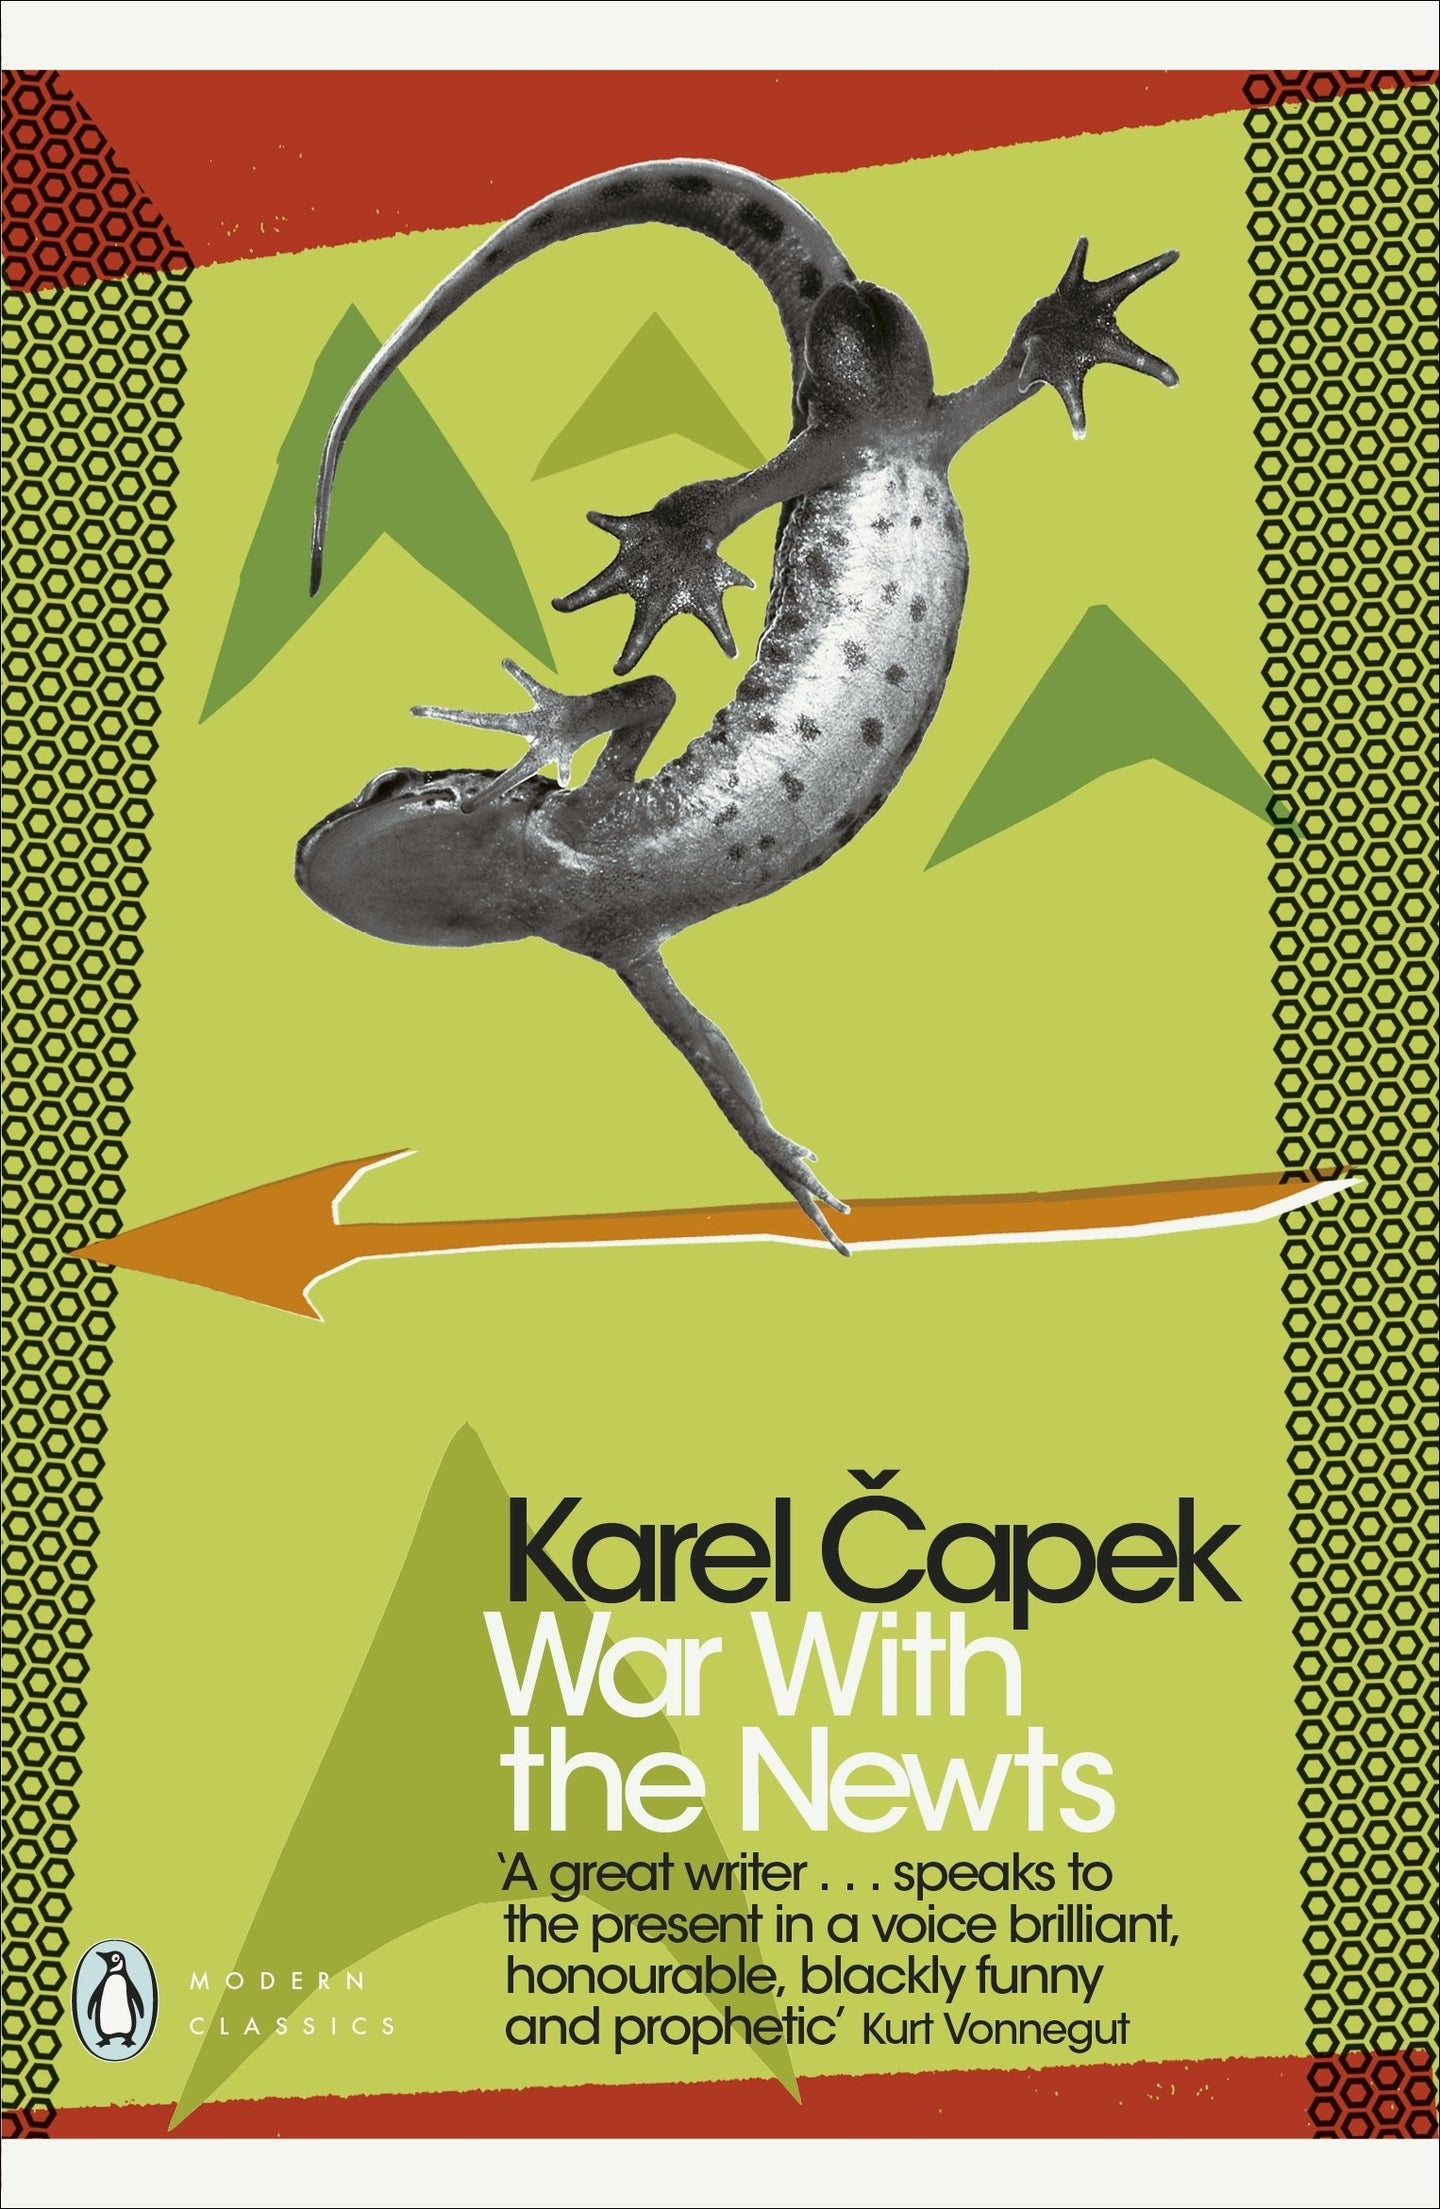 Karel Capek: War with the Newts (Valka s mloky) | Czech Sci-fi | Book in English - Czech Poster Gallery